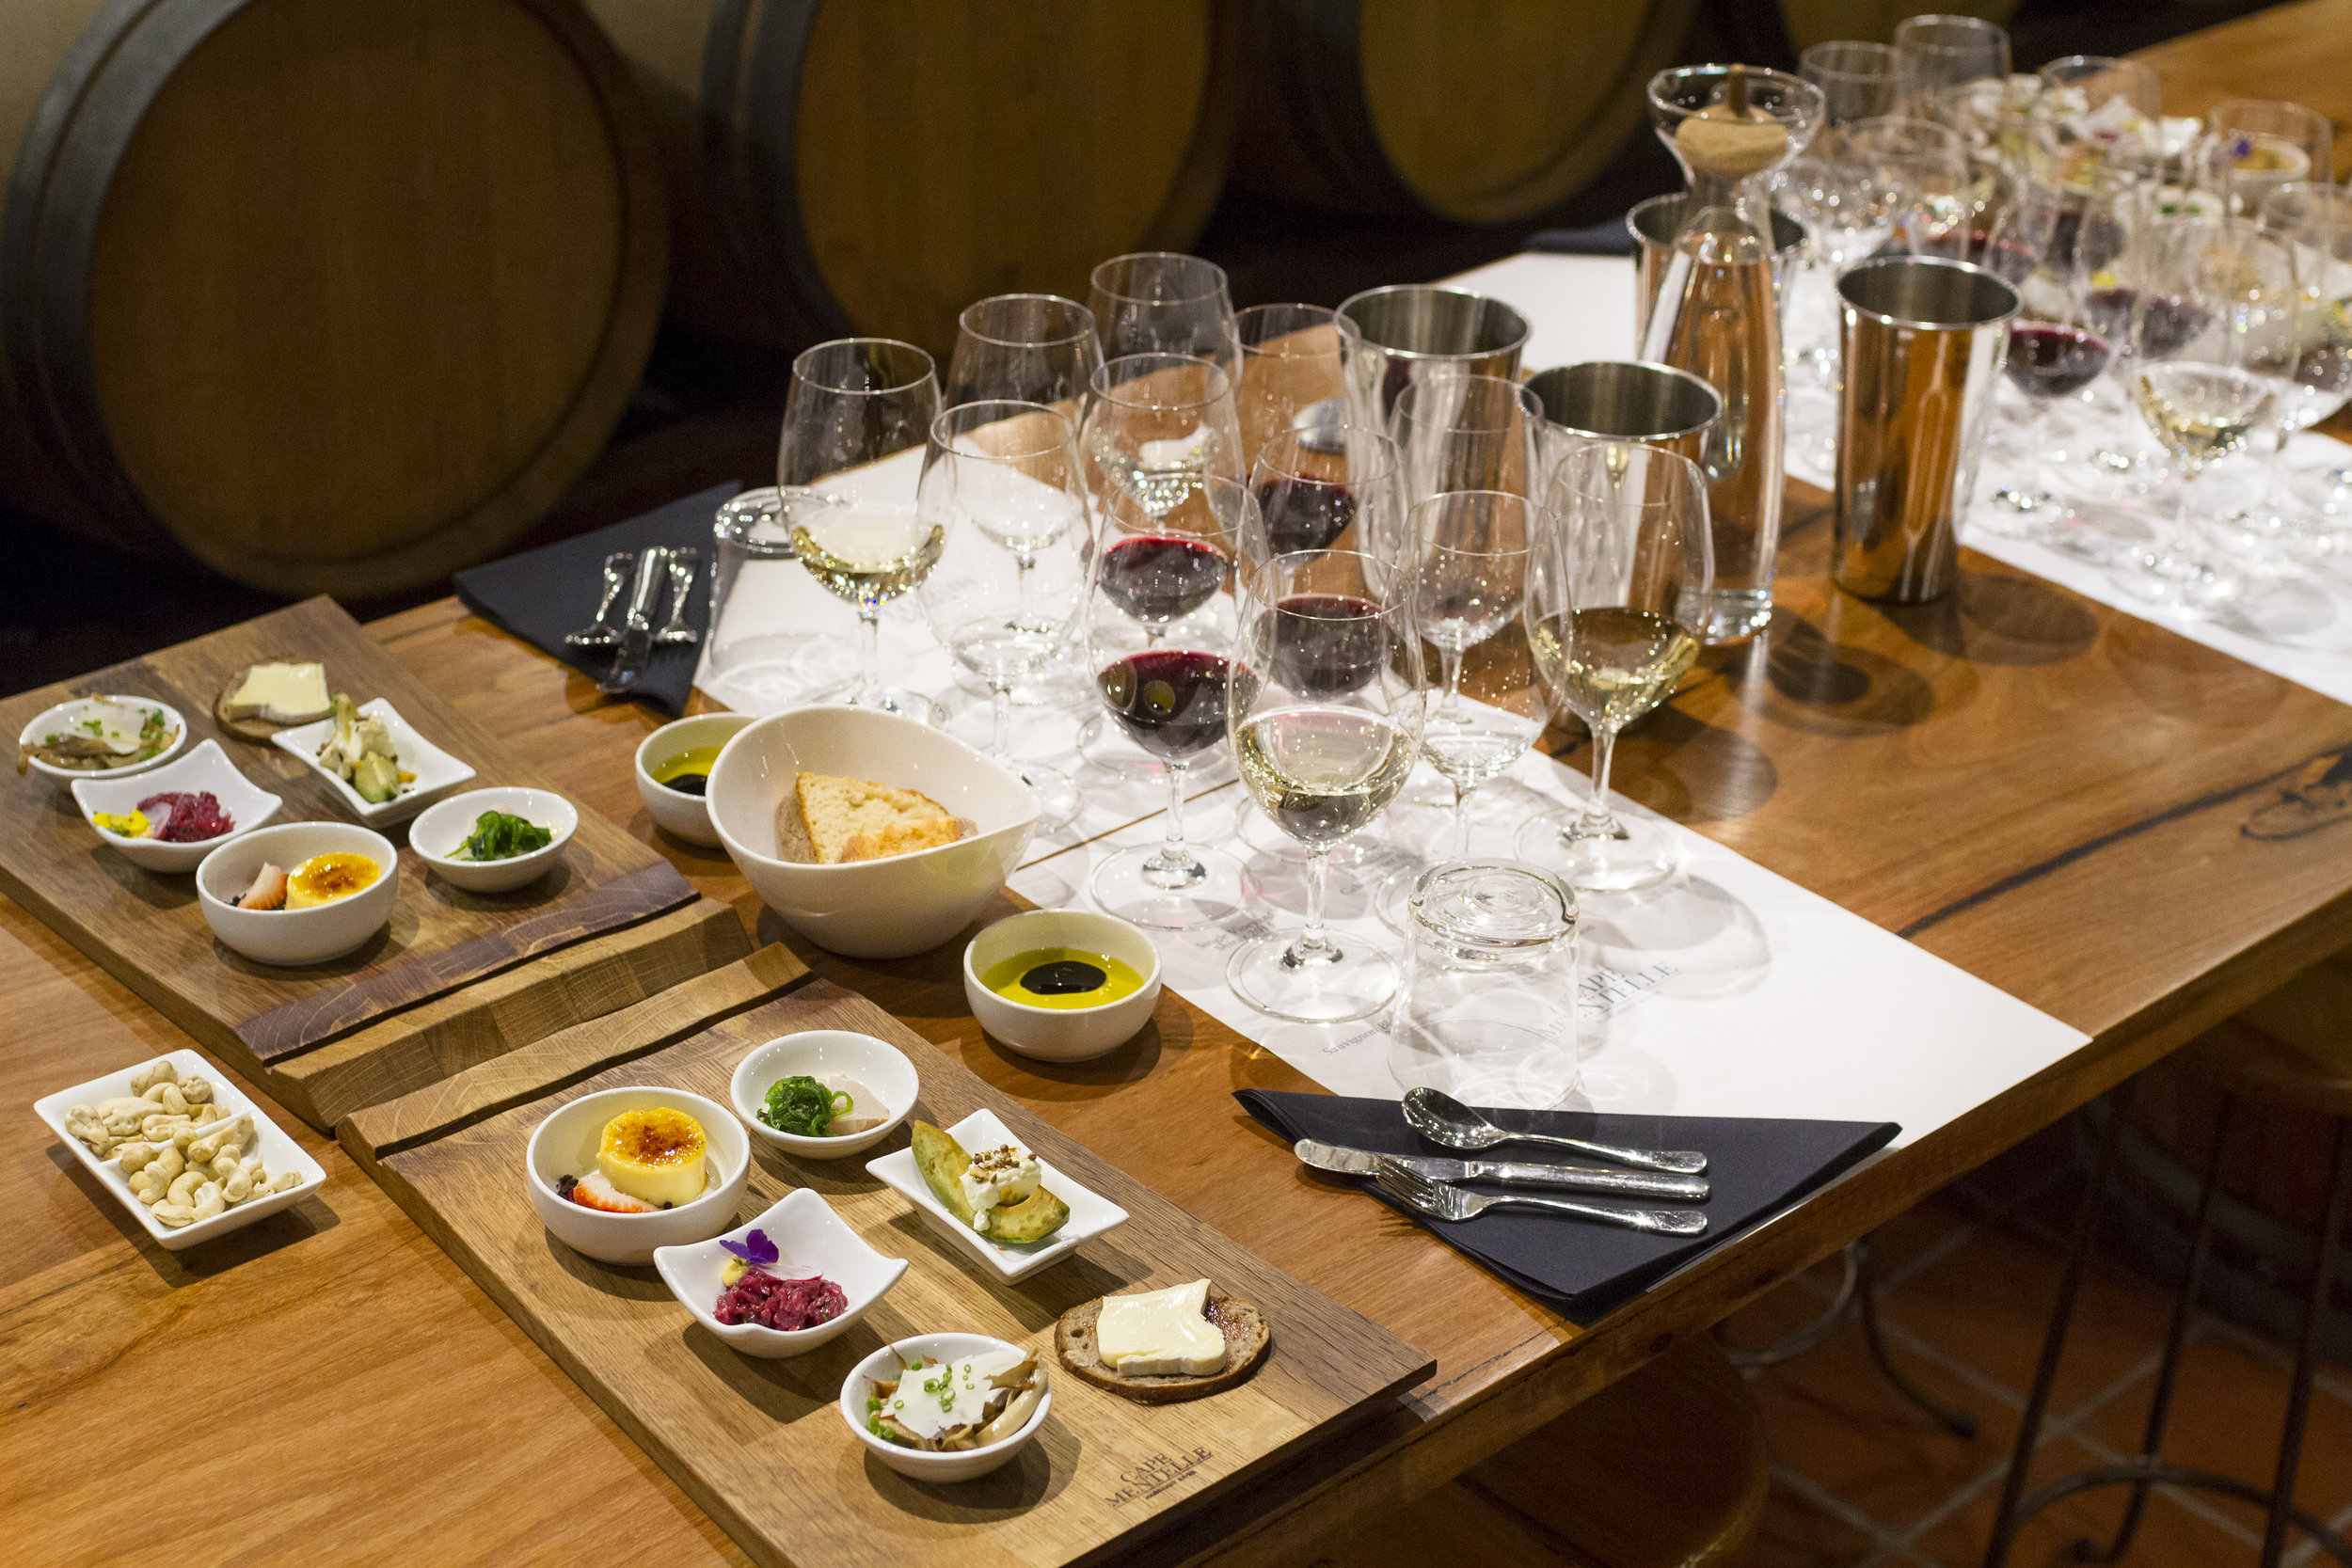 A behind the scenes tour at one of the regions founding five wineries followed by a private tasting of six wines matched to a selection of delicious local produce, hosted in the historic Cape Mentelle barrel cellar.